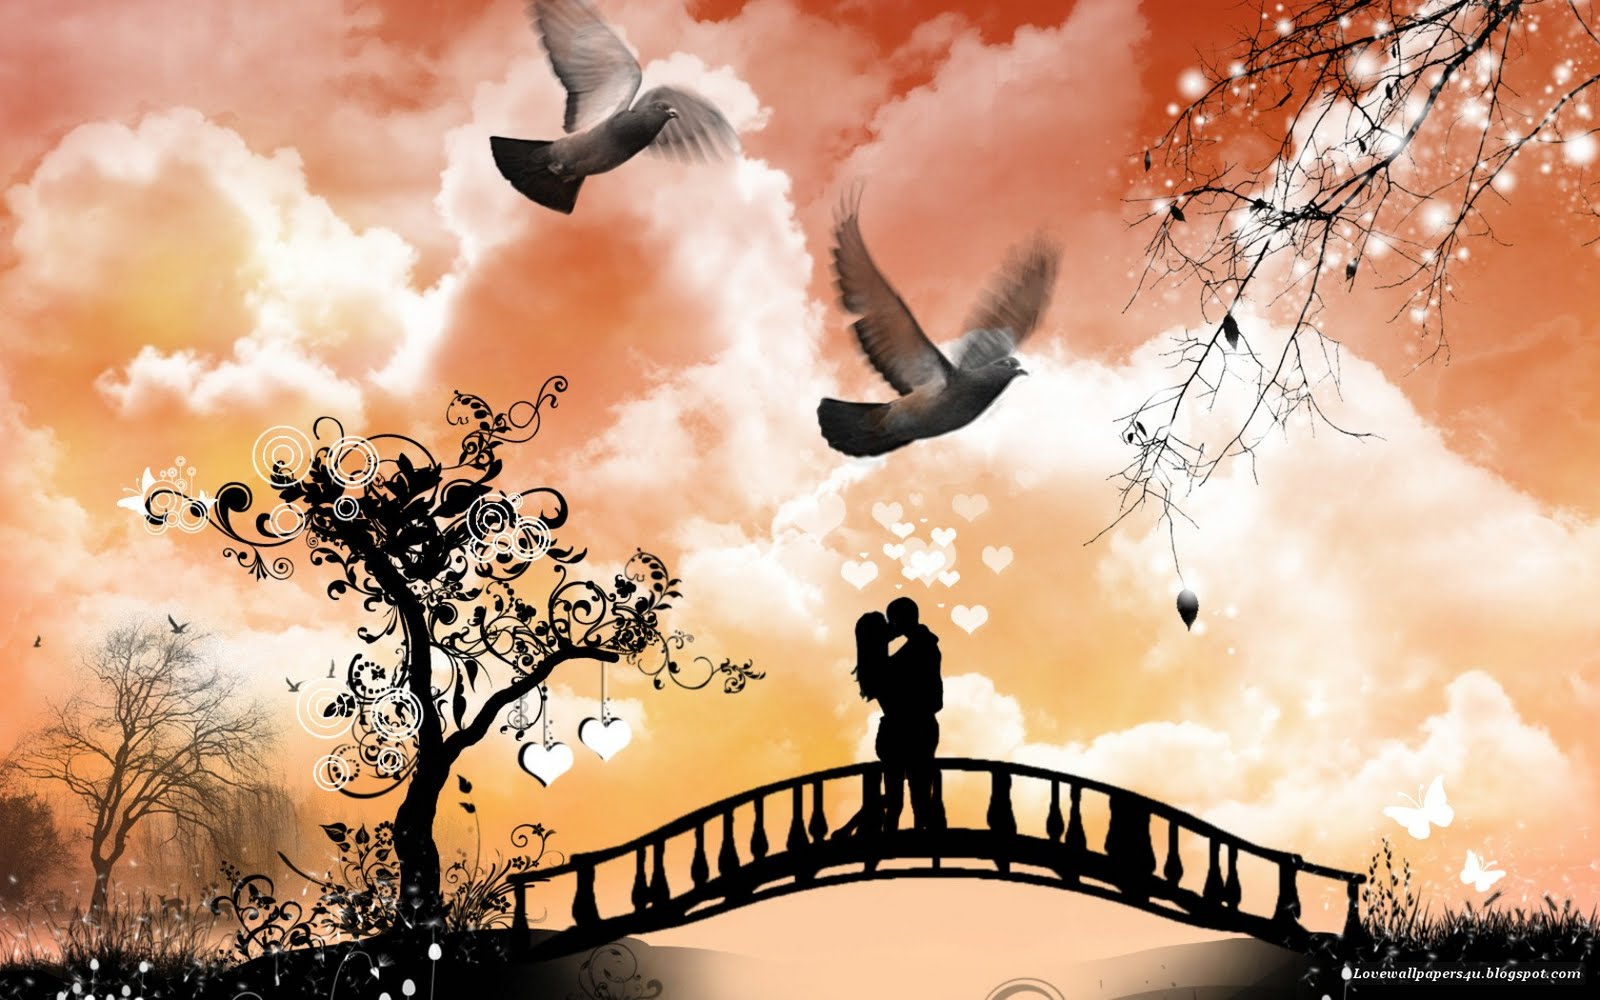 So Beautiful Love Wallpaper : freewallpaperpk wallpaper backgrounds love windows7